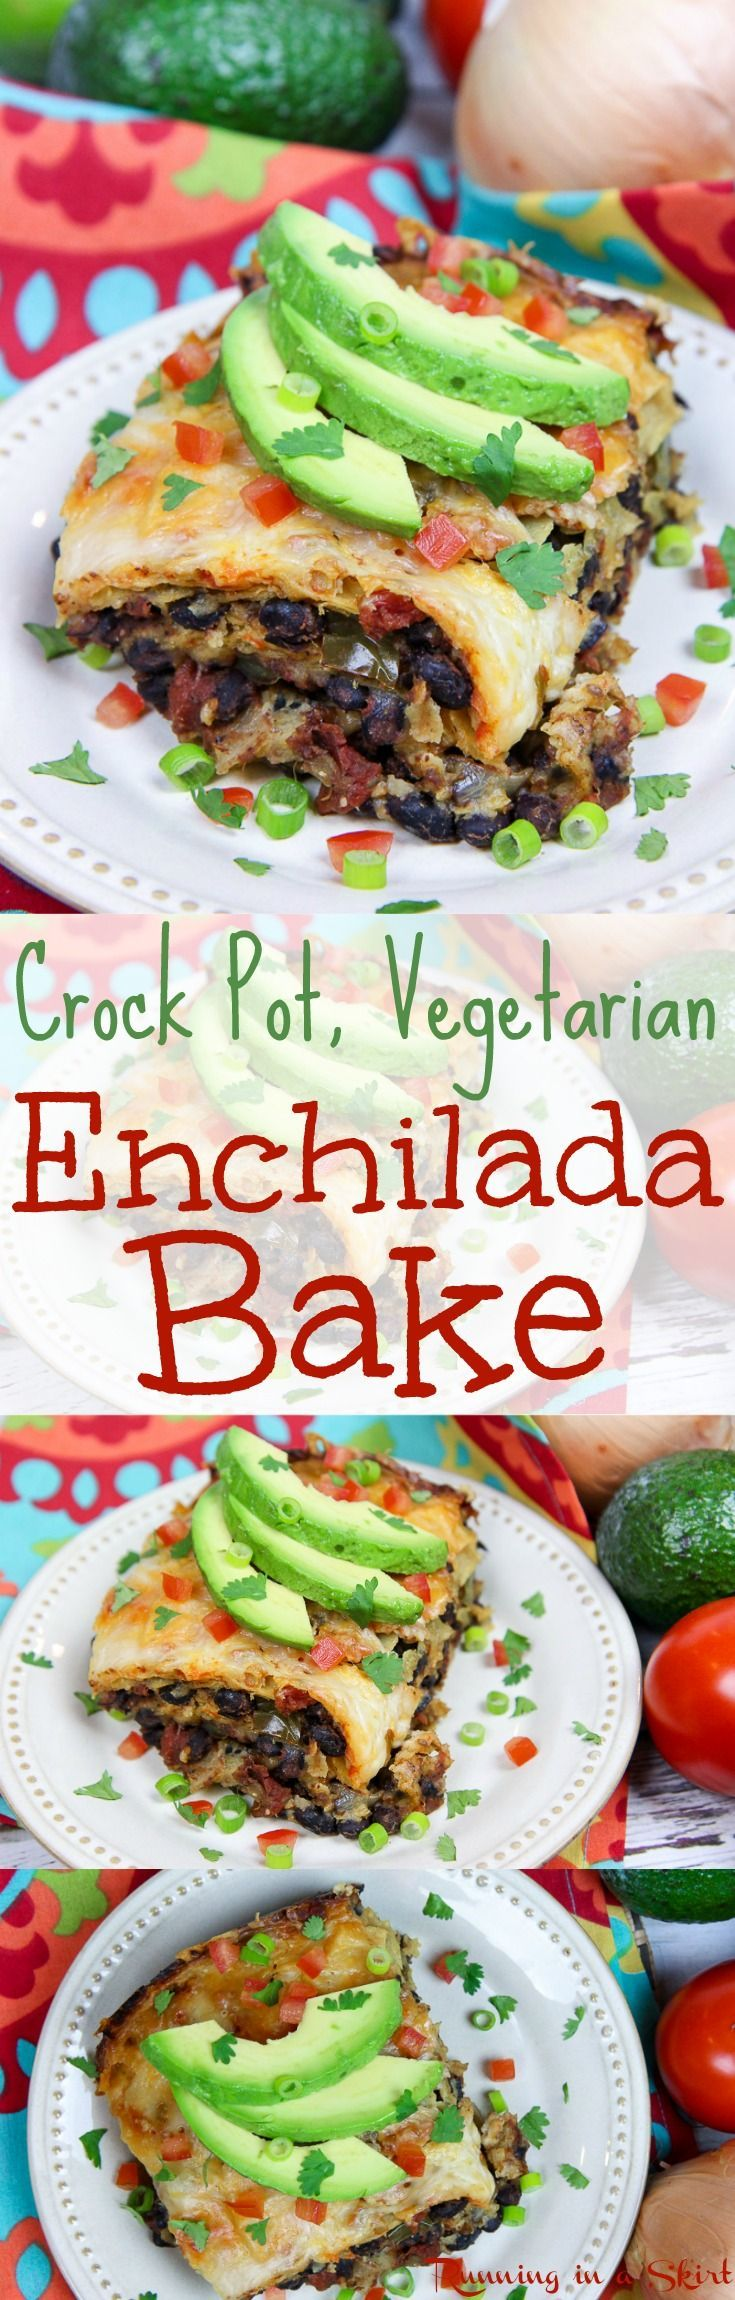 Easy Crock Pot Vegetarian Enchilada Stack recipe! An easy, healthy casserole style enchiladas made in the slow cooker or crockpot.  Filled with black beans, onions, peppers, corn tortillas and cheese!  Topped with sour cream or greek yogurt, avocado and your favorite Mexican toppings.  A great comfort foods for family dinners! / Running in a Skirt